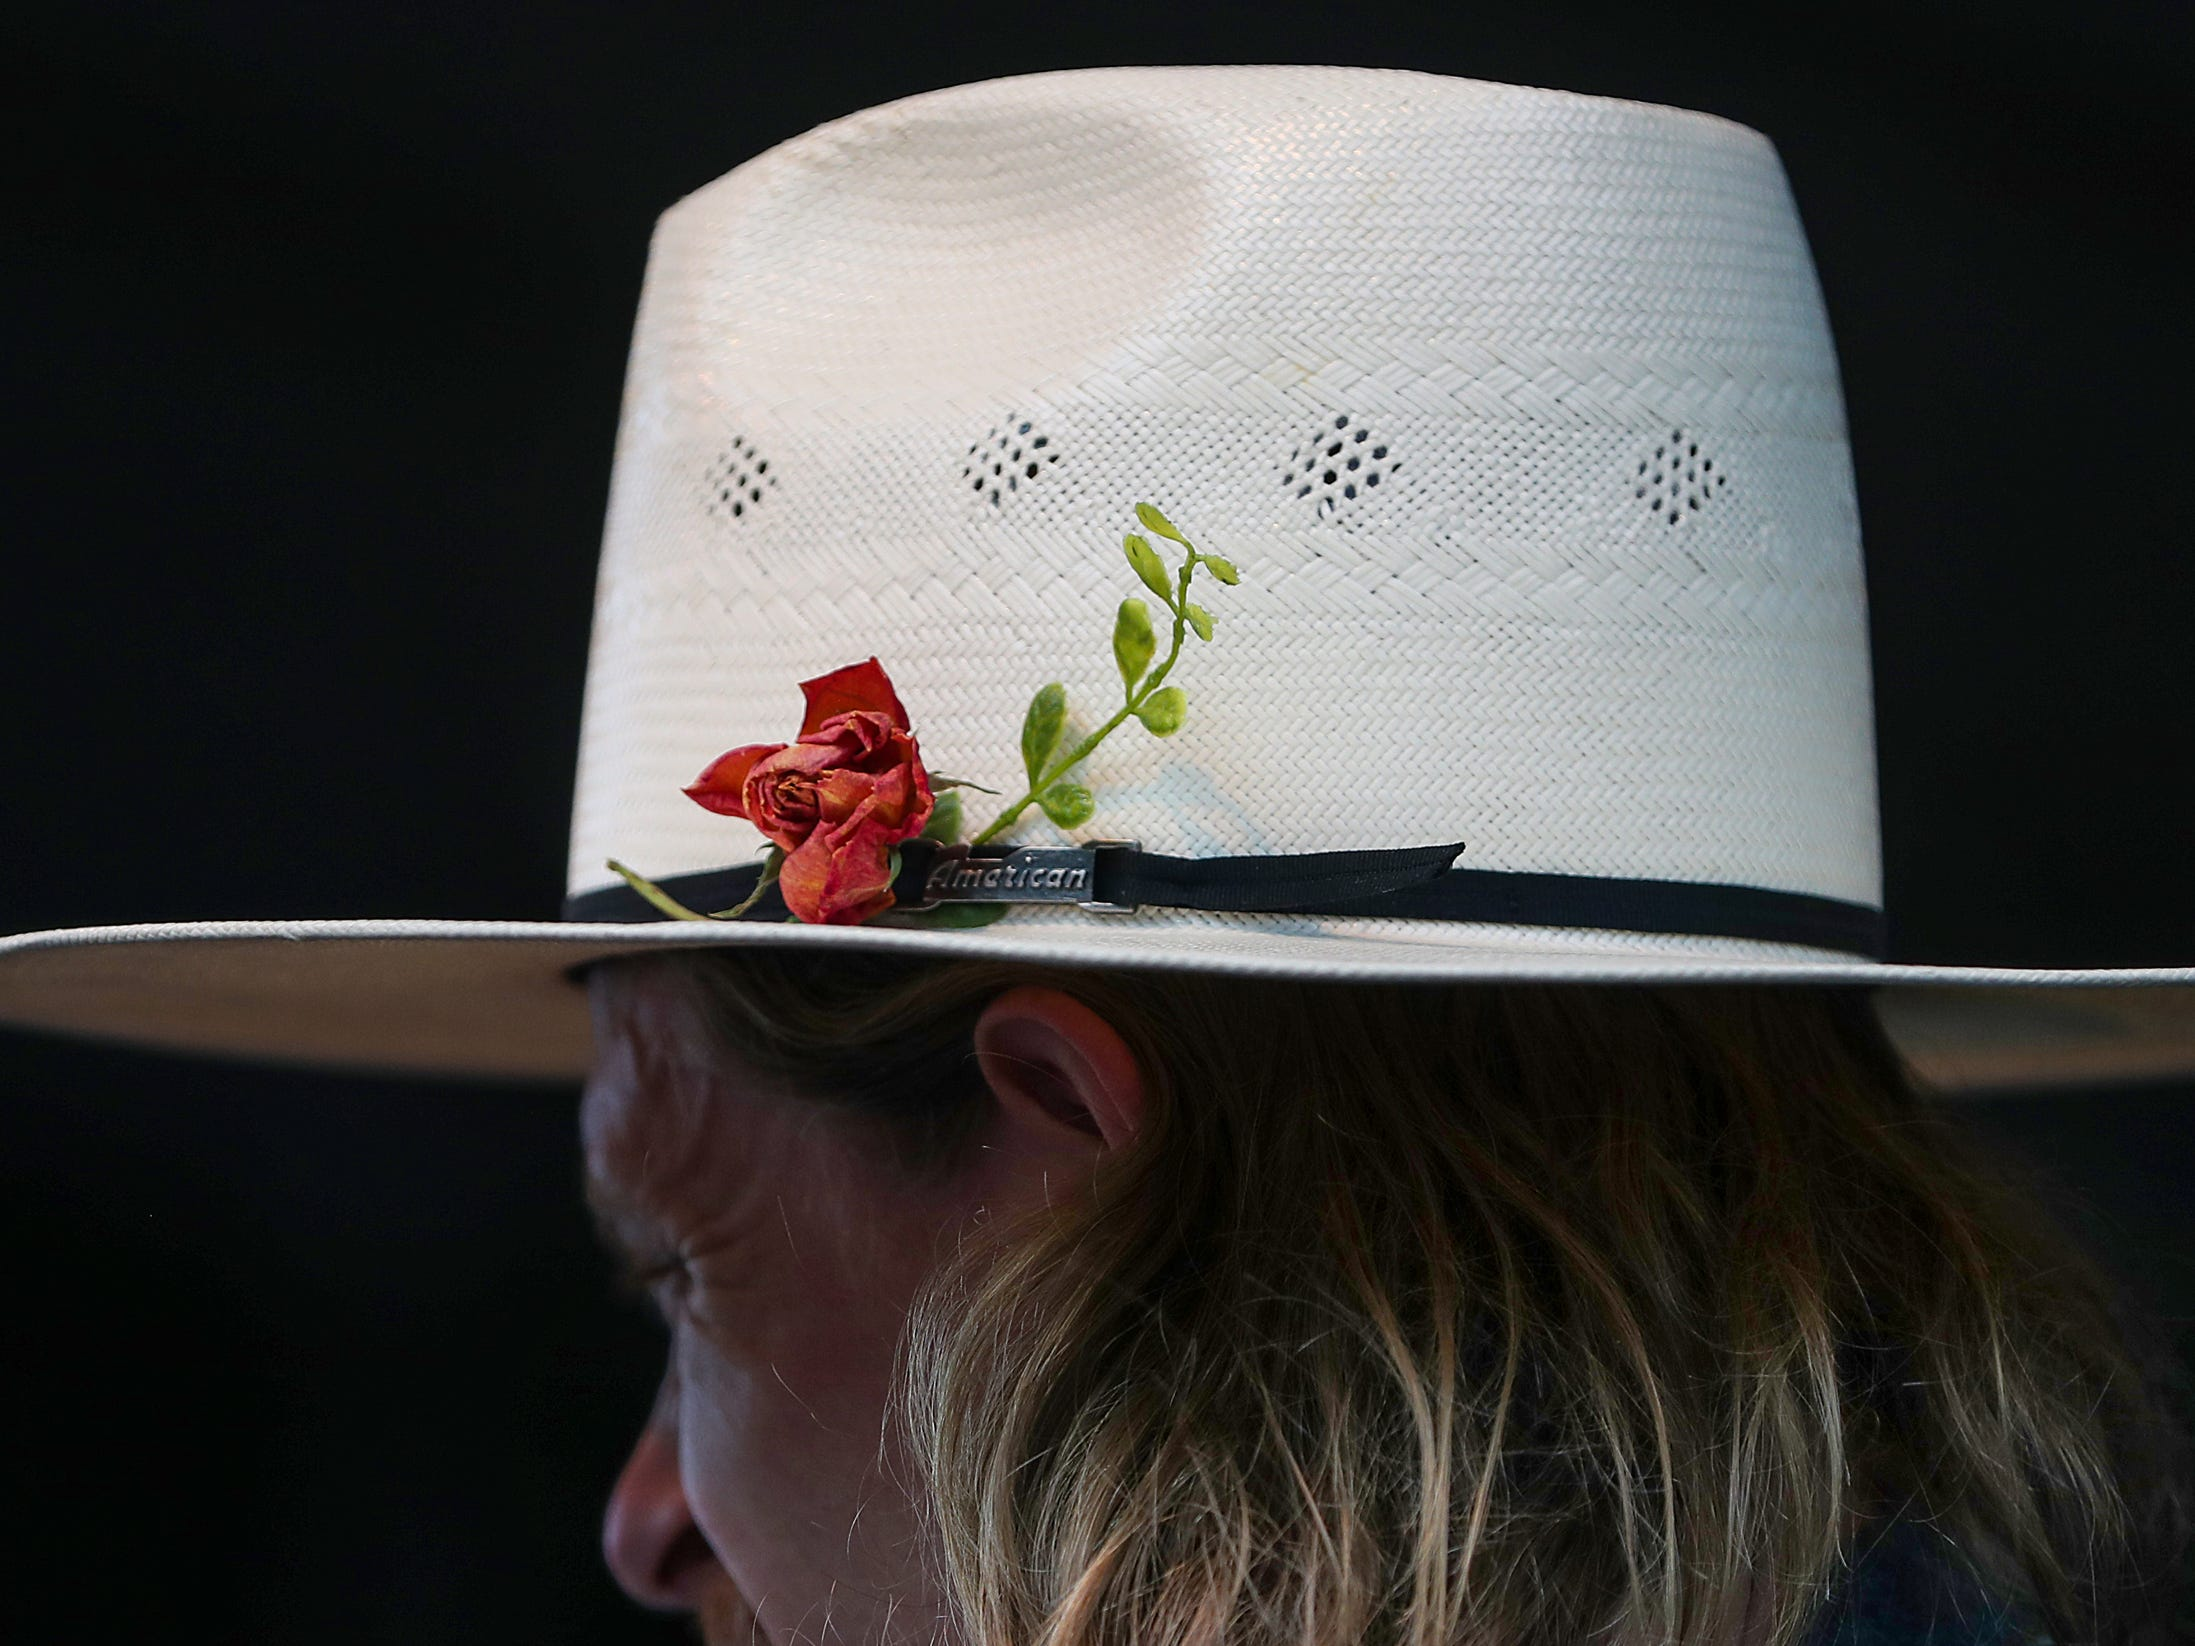 Vocalist and guitarist Taylor Meier wears a stylish hat while performing with Ohio-based folk group Caamp at the inaugural Holler on the Hill music festival at Garfield Park in Indianapolis, Saturday, Sept. 22, 2018.